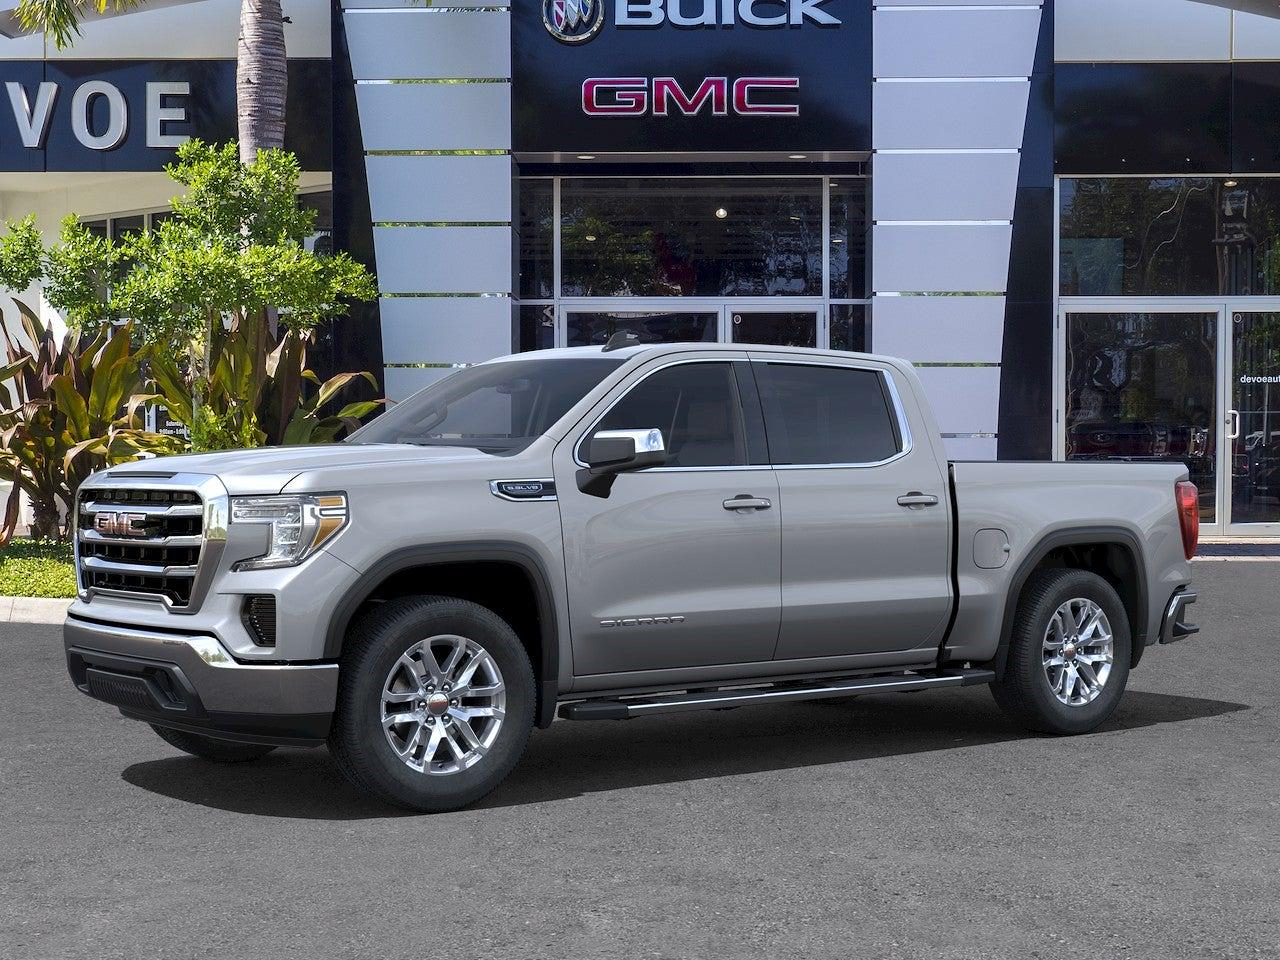 2021 GMC Sierra 1500 Crew Cab 4x2, Pickup #T21272 - photo 4